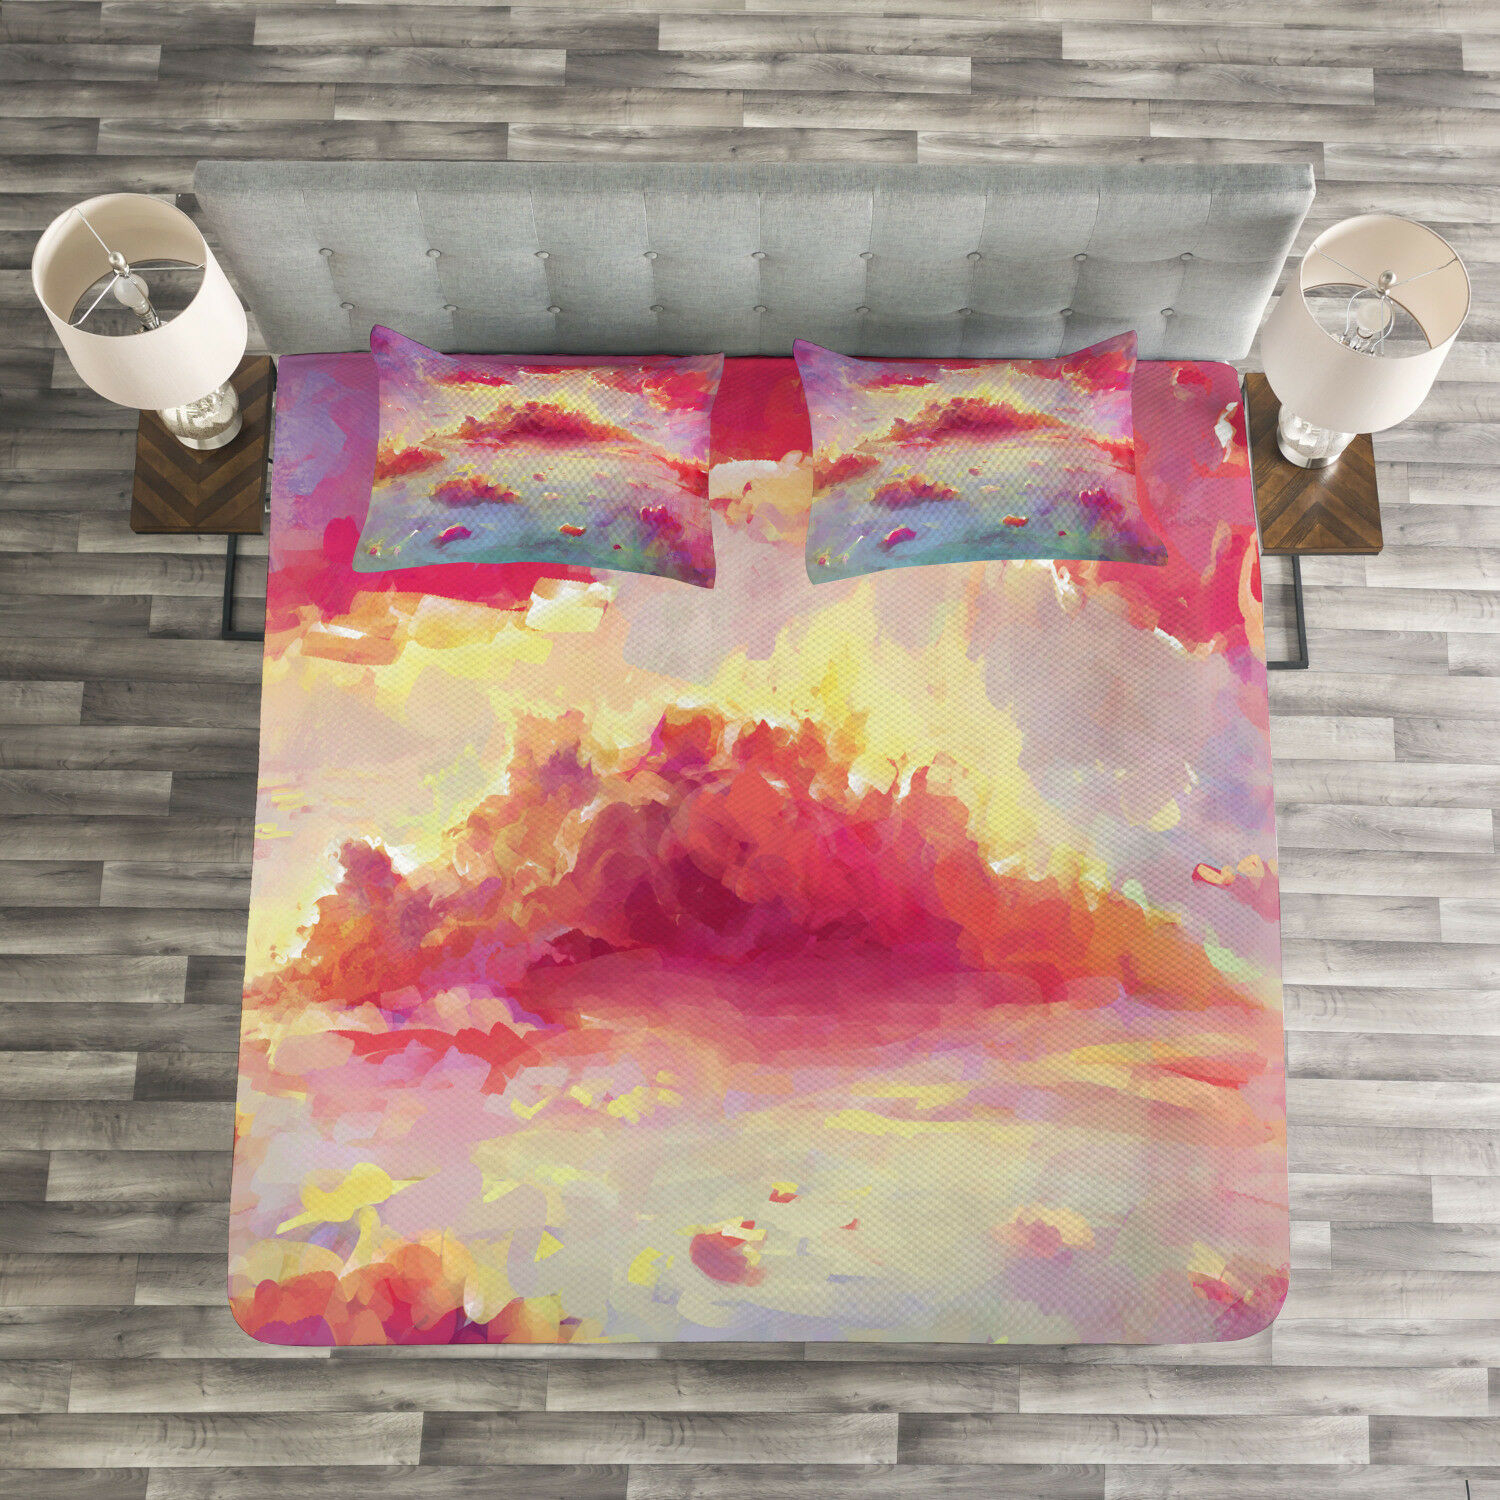 Coral Quilted Bedspread & Pillow Shams Set, Vibrant Clouds Scenic Print